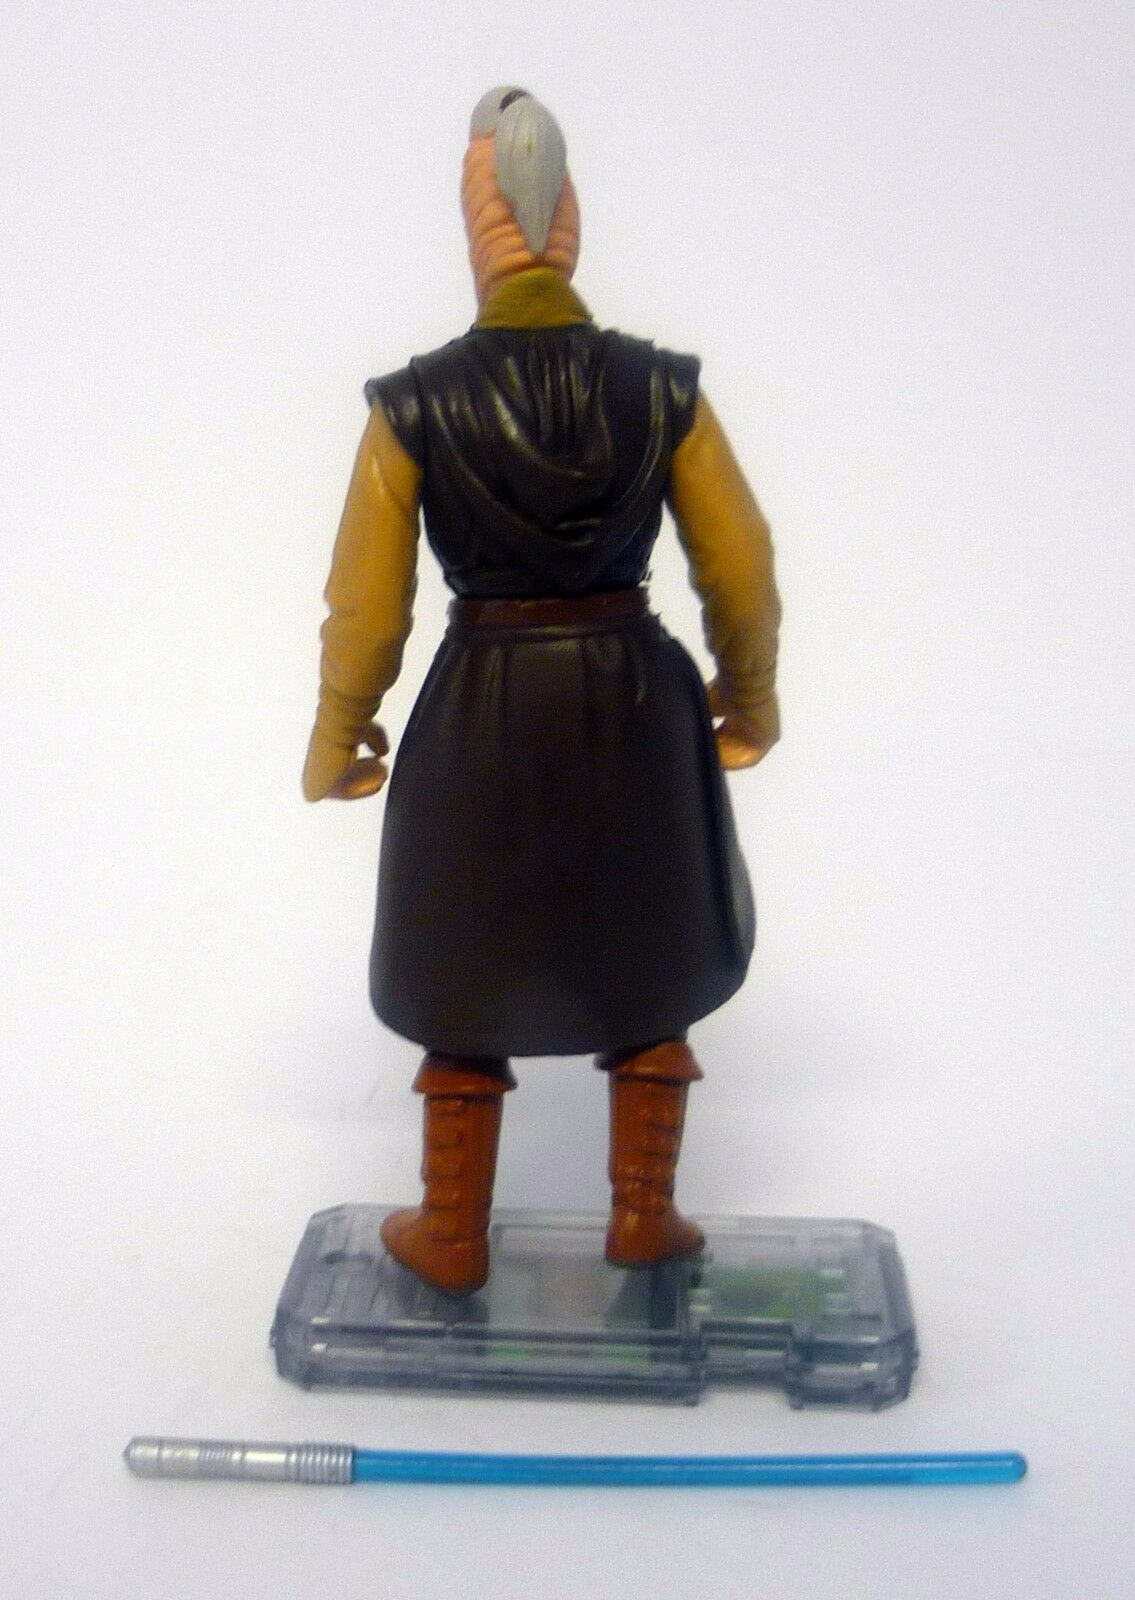 StarWars collection : Star Wars Ki-Adi-Mundi Épisode I Action Figurine Complet C9 + 1999